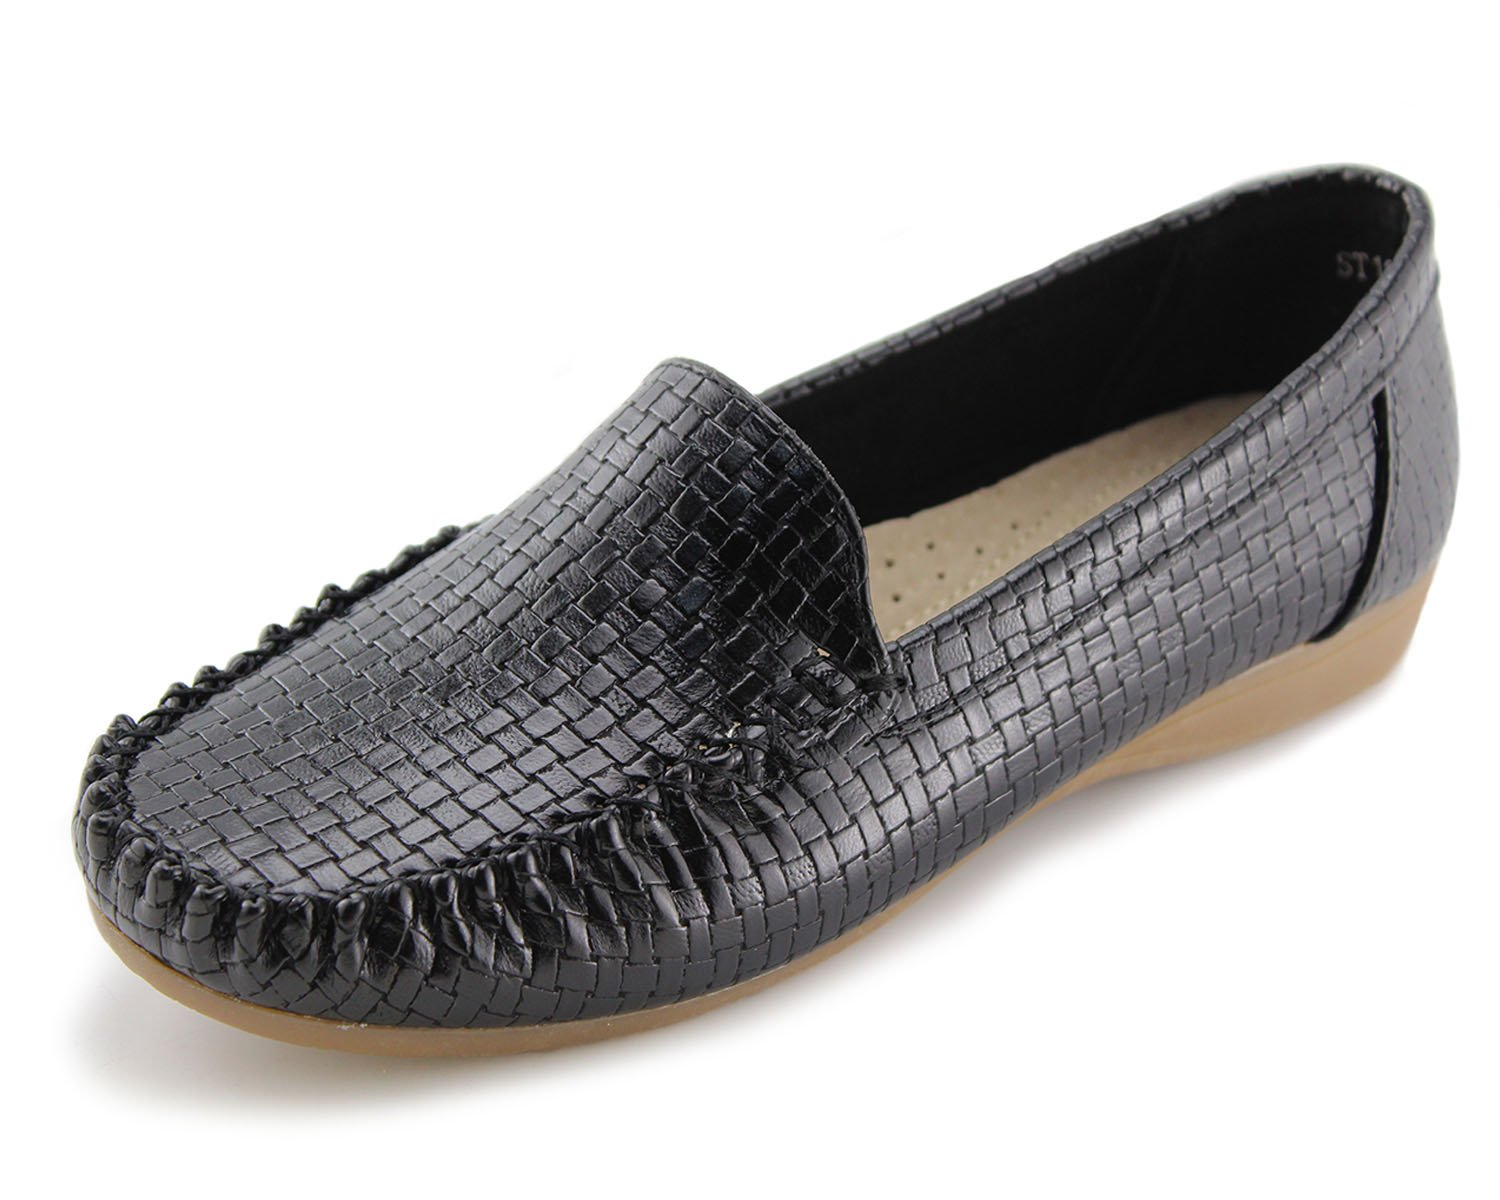 Jabasic Women's Slip-on Loafers Flat Casual Driving Shoes(9, Black)